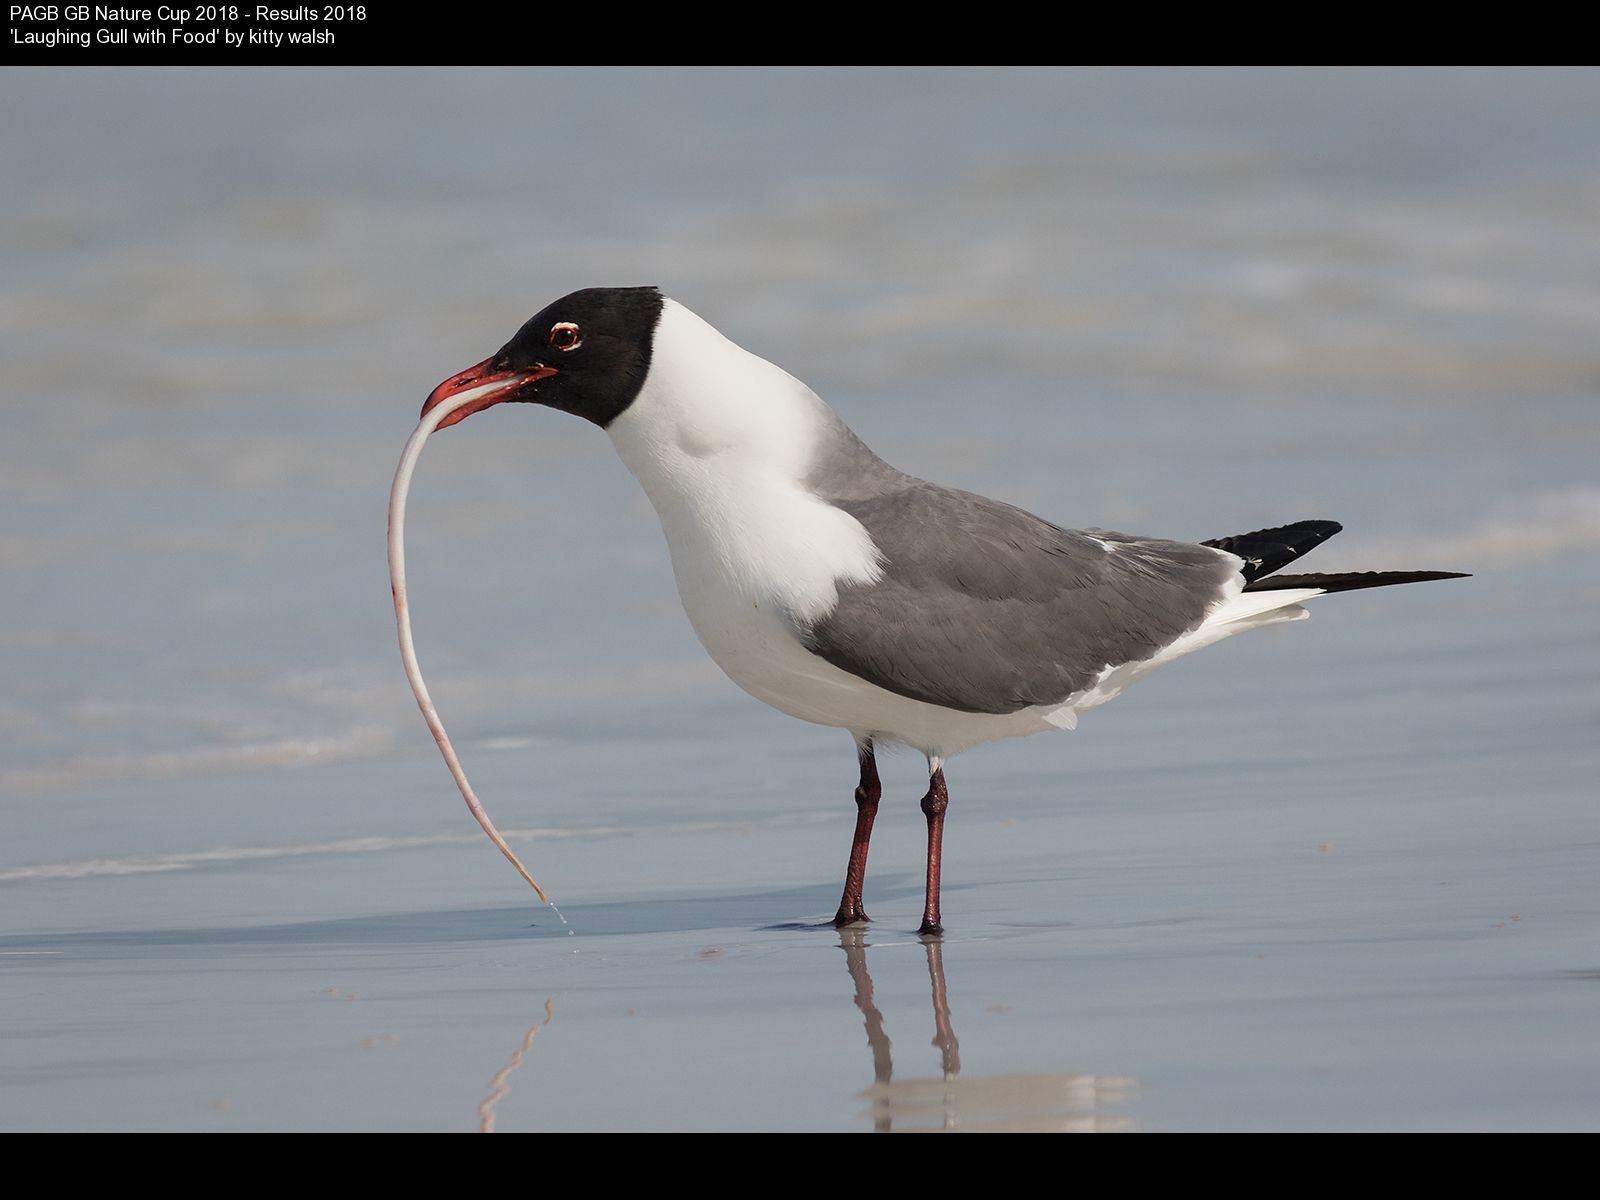 9378_kitty walsh_Laughing Gull with Food